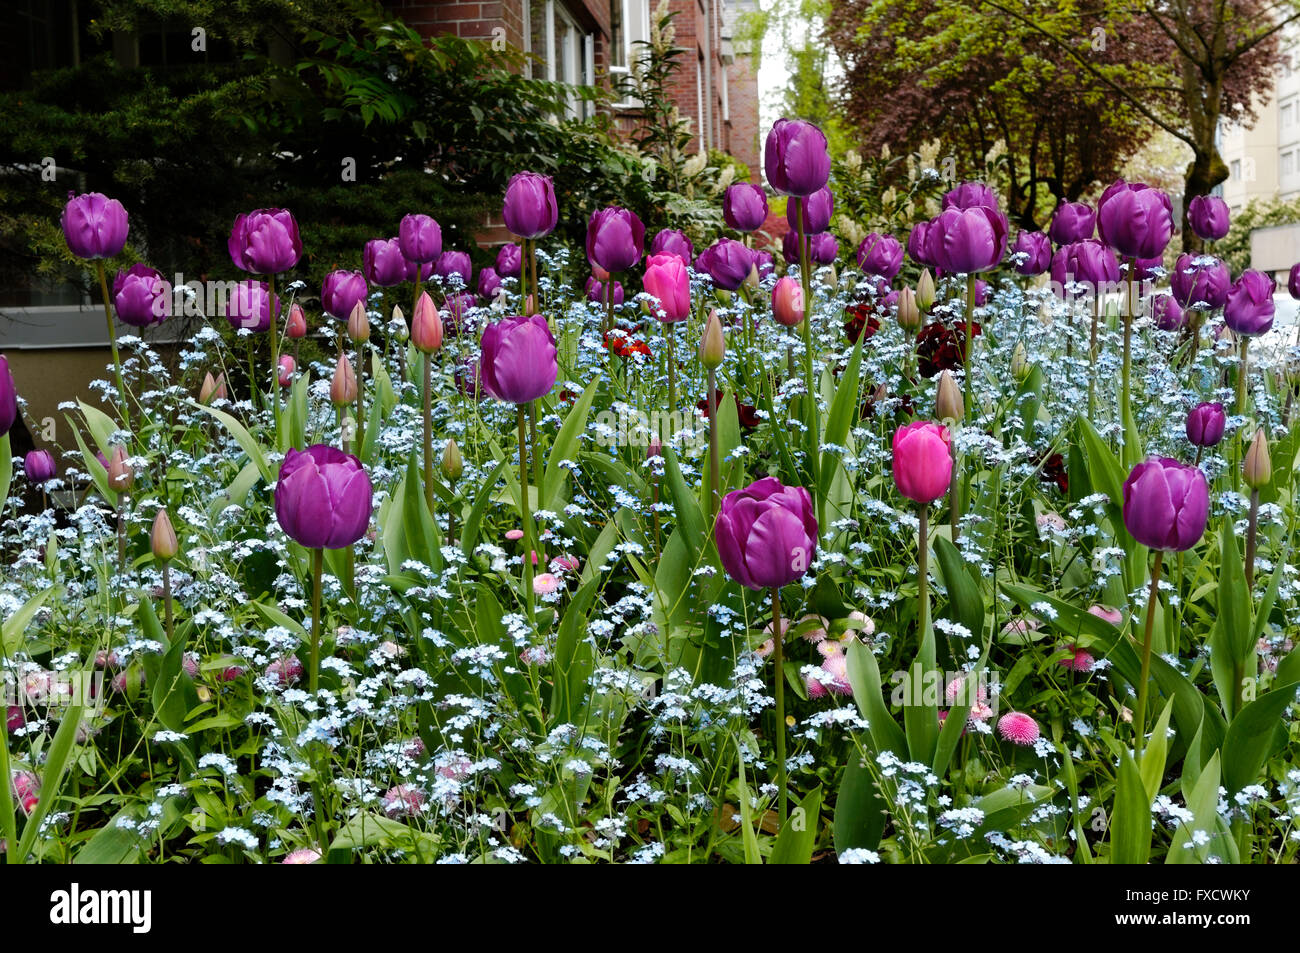 A Bed Of Purple Tulips And Other Spring Flowers In The West End